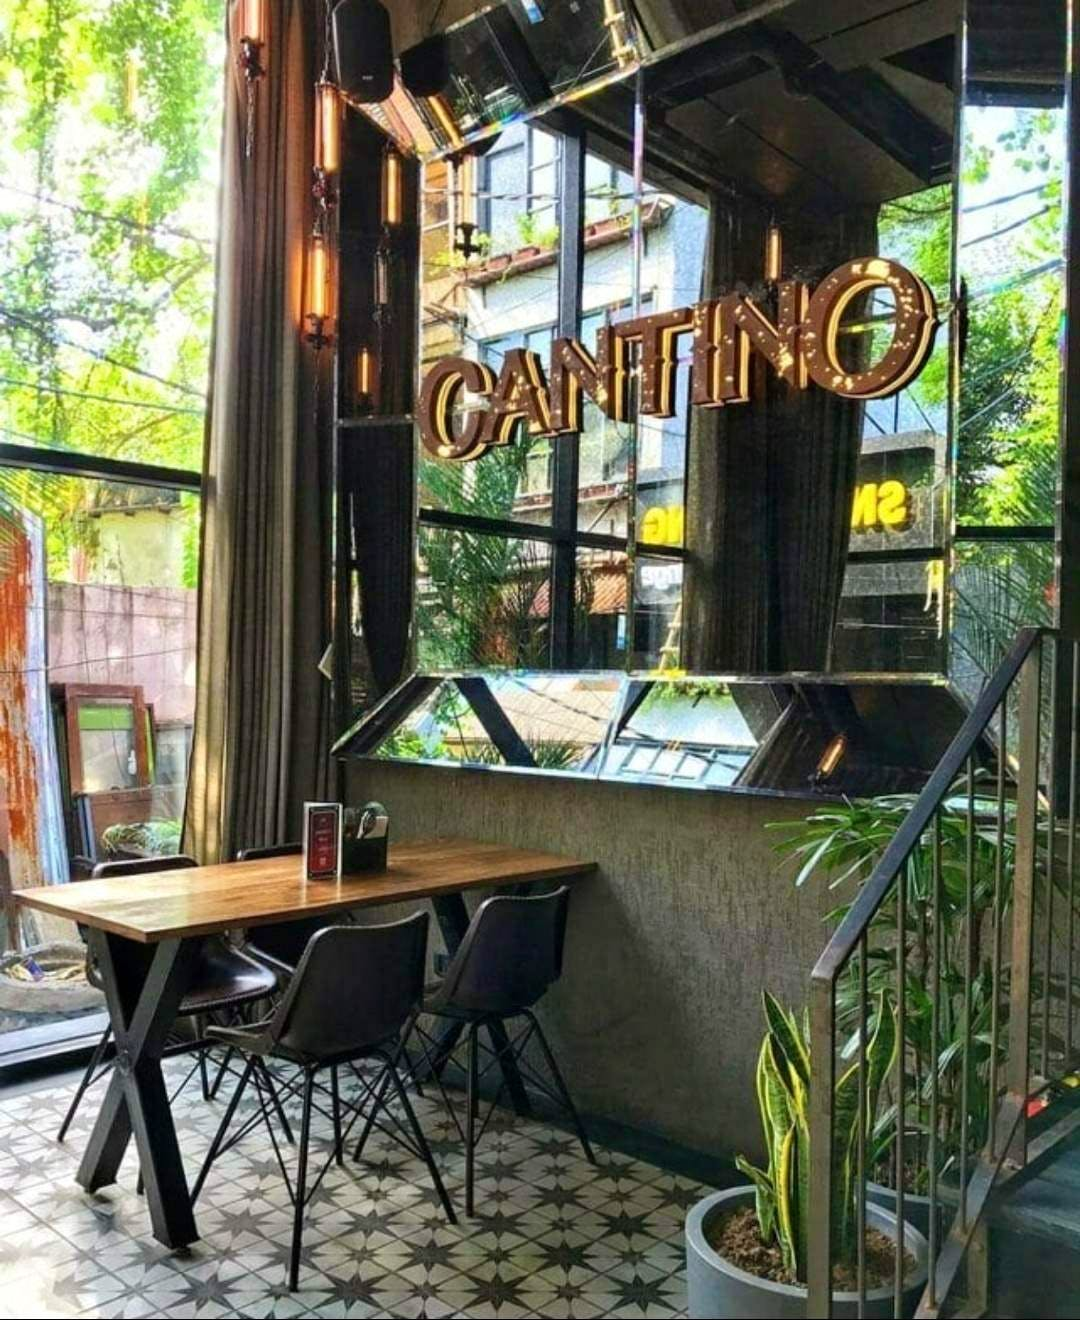 Live Music, Pretty Ambience & Good Food At Cantino